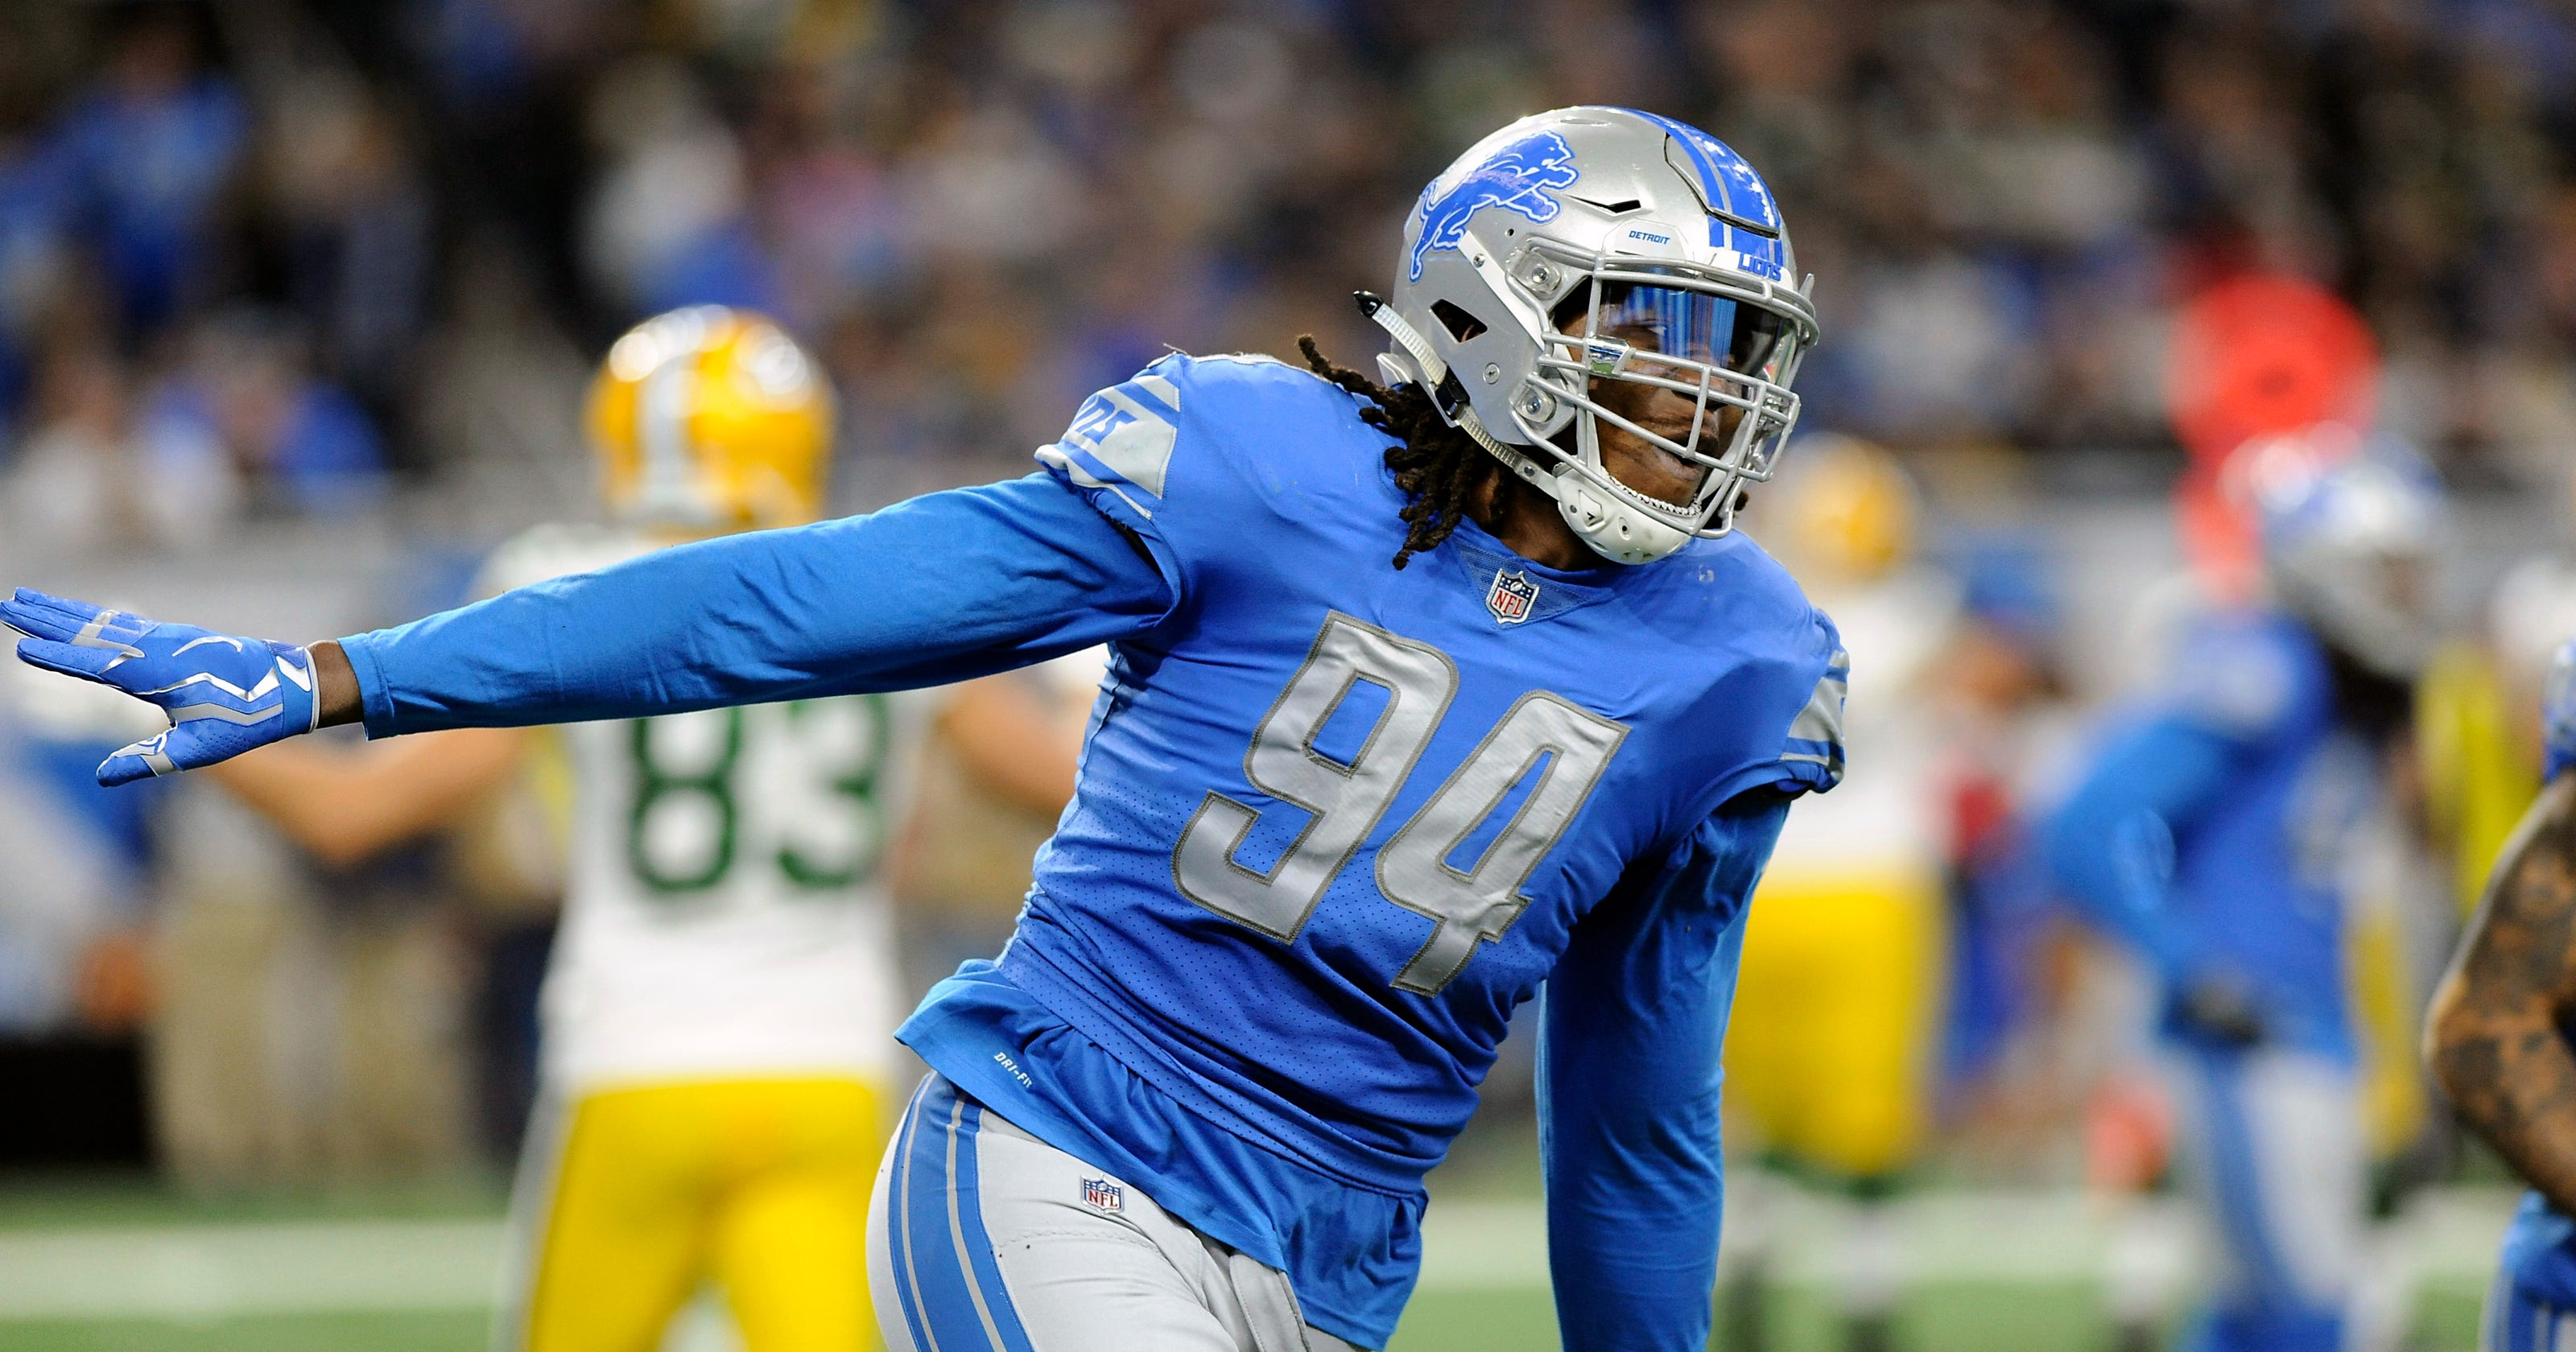 d8850e1f Why the Detroit Lions should use the franchise tag on Ziggy Ansah